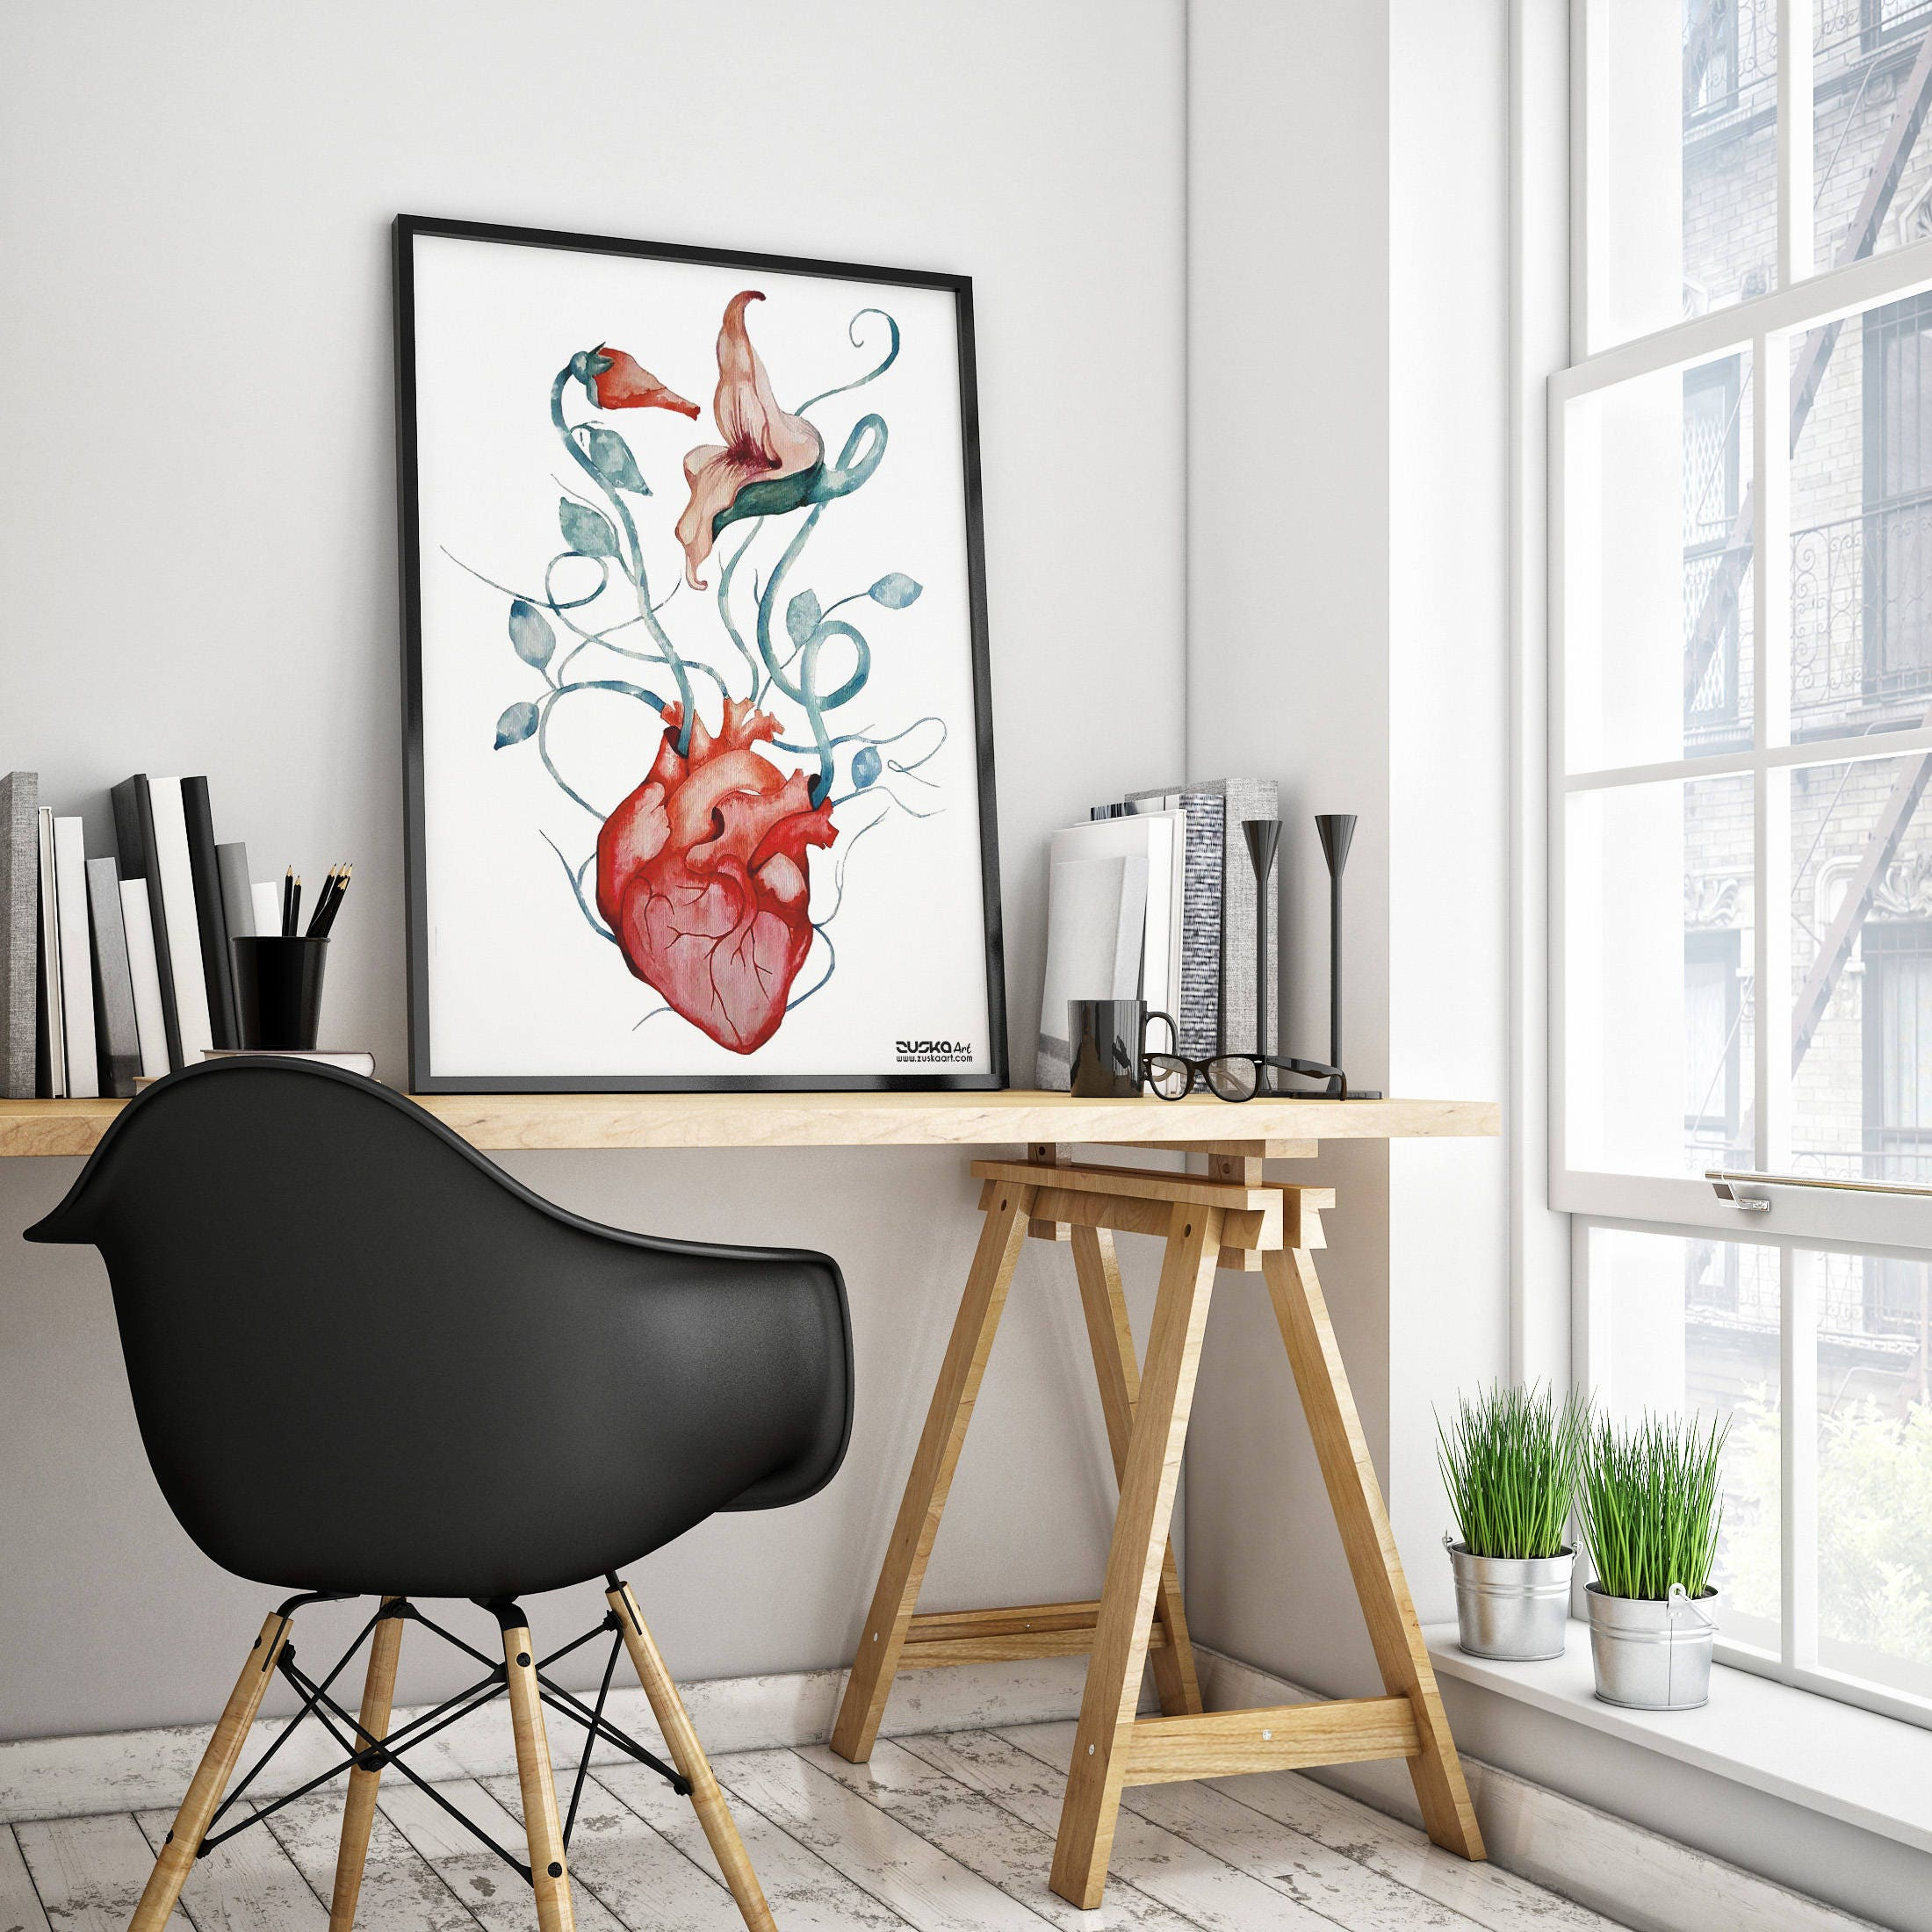 Pink floyd the wall flowers framed poster wall art decor rock pink floyd the wall flowers framed poster wall art decor rock music fan gift anatomical heart psychedelic artwork zuskaart mightylinksfo